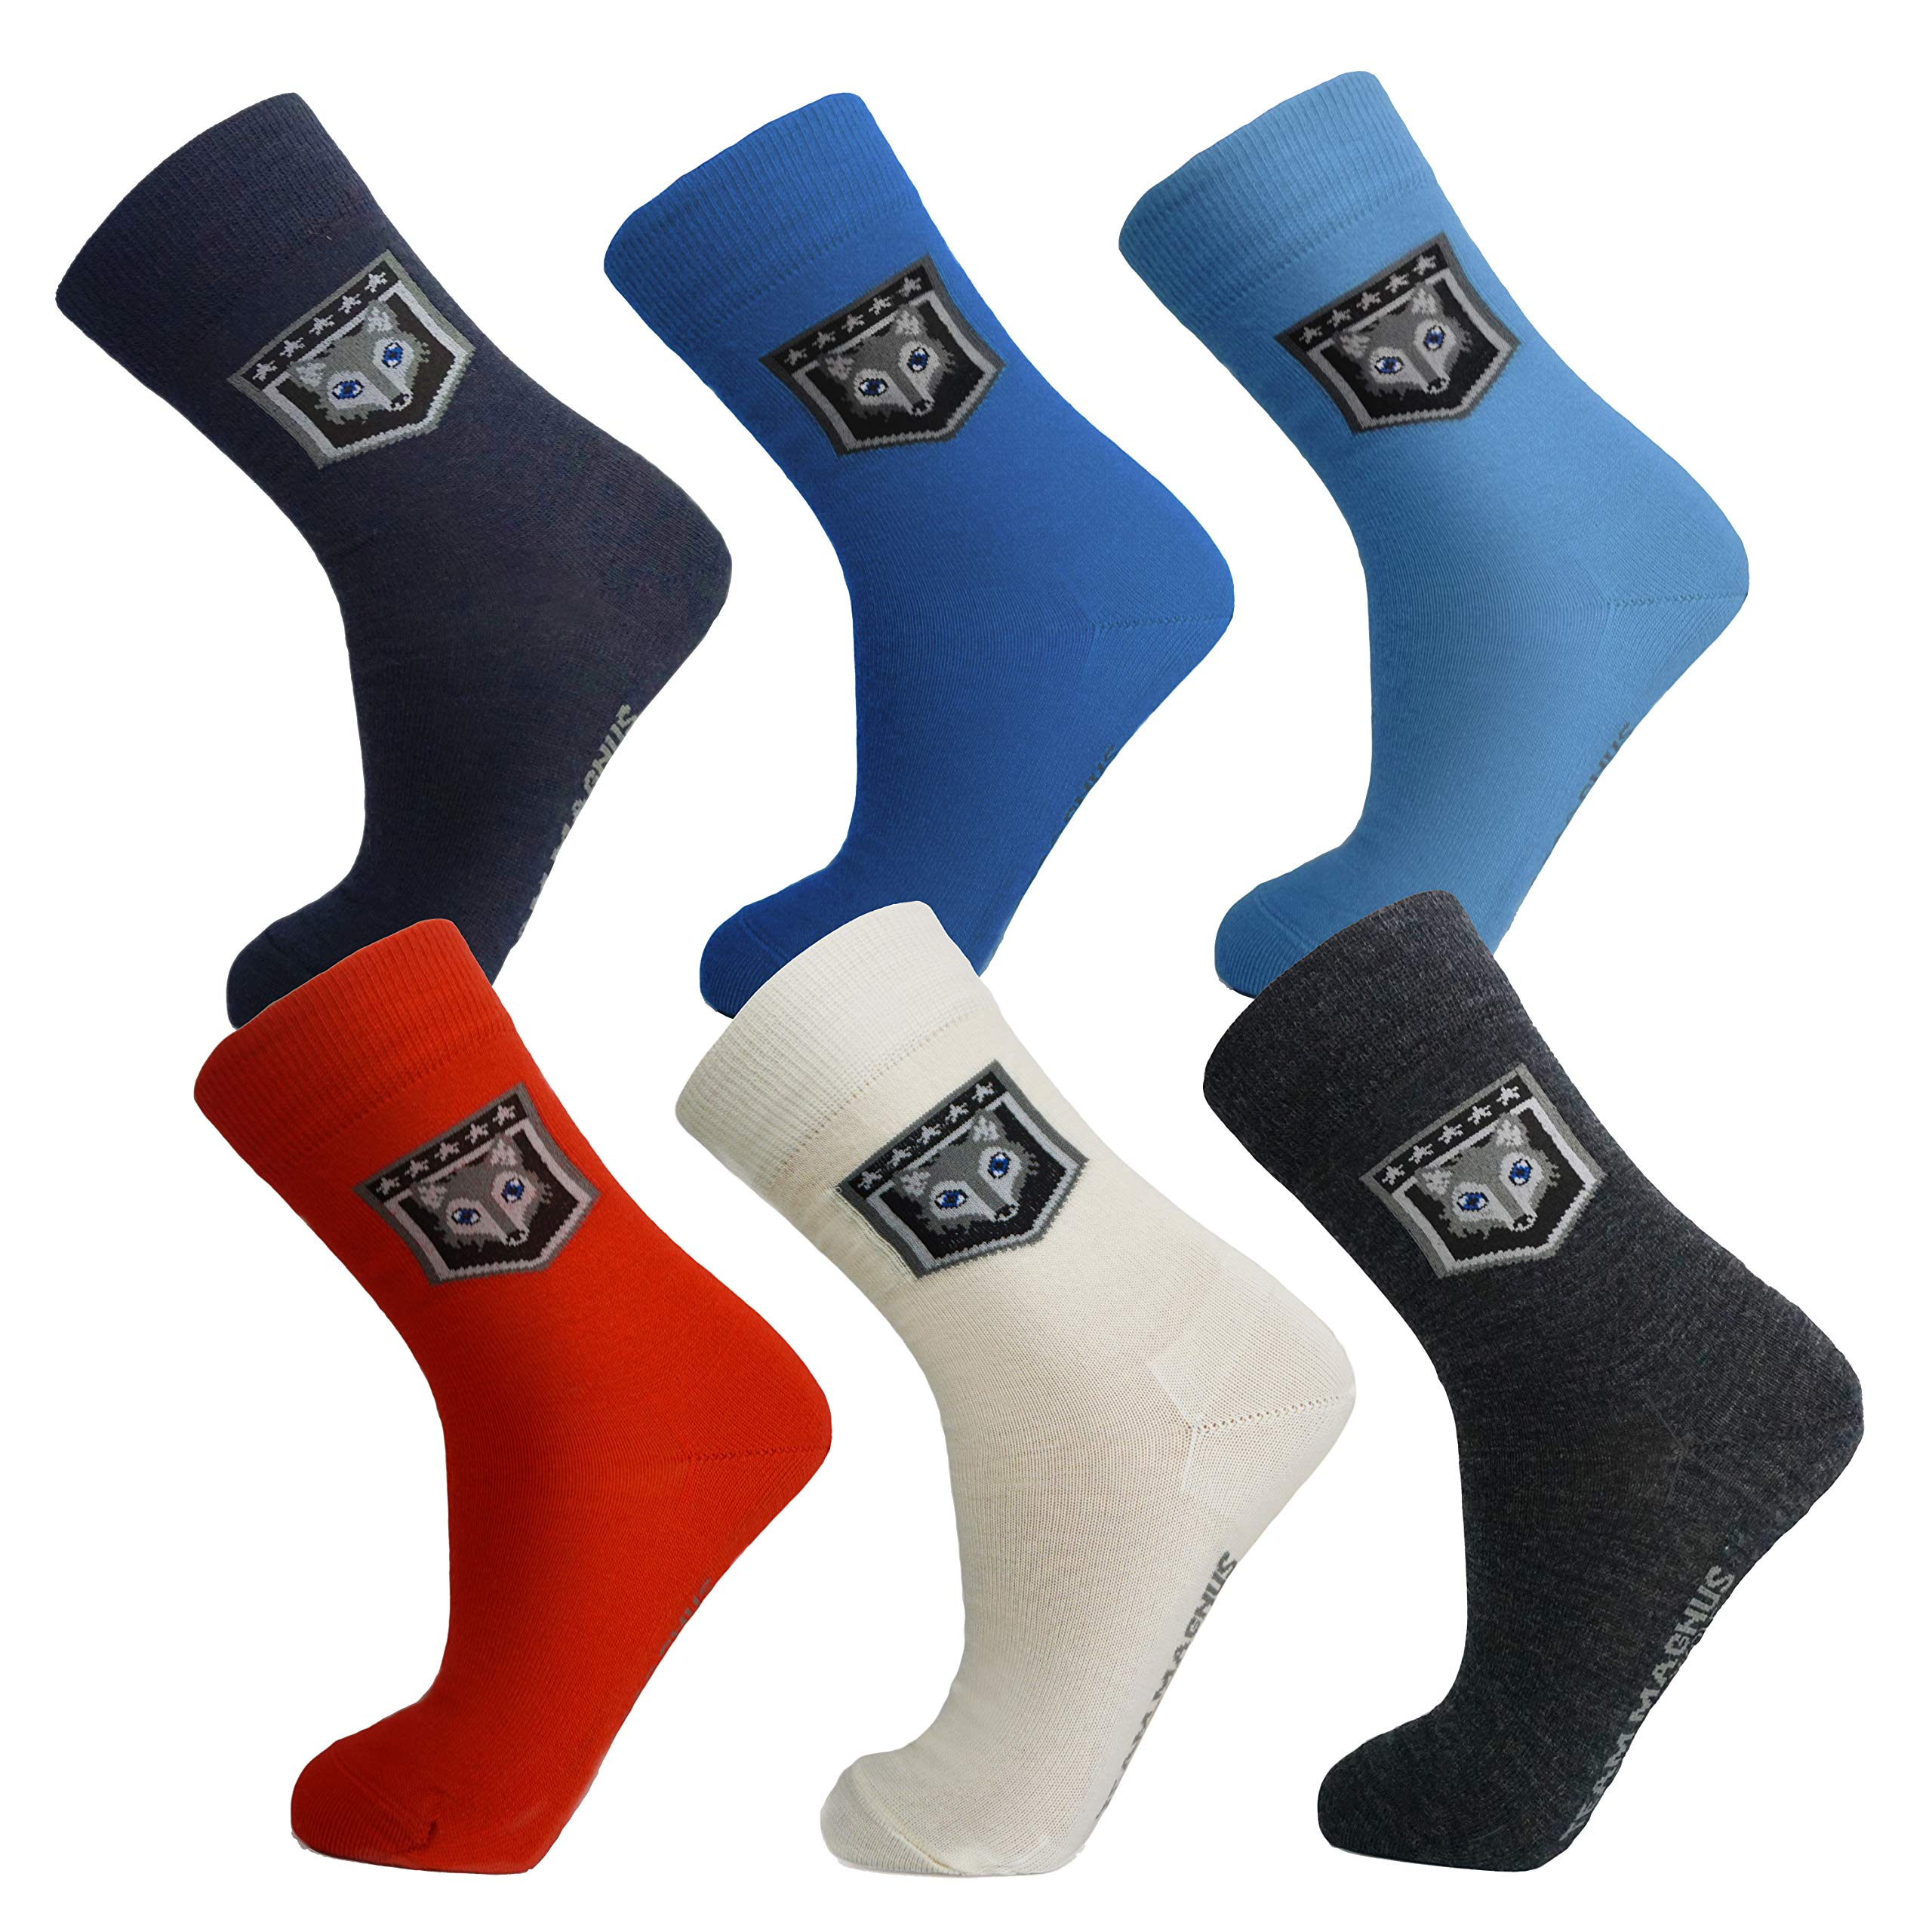 Tundra wolf 3-pack exclusive wool socks -extremely thin & warm socks 80% wool (grey, kids 1-4)